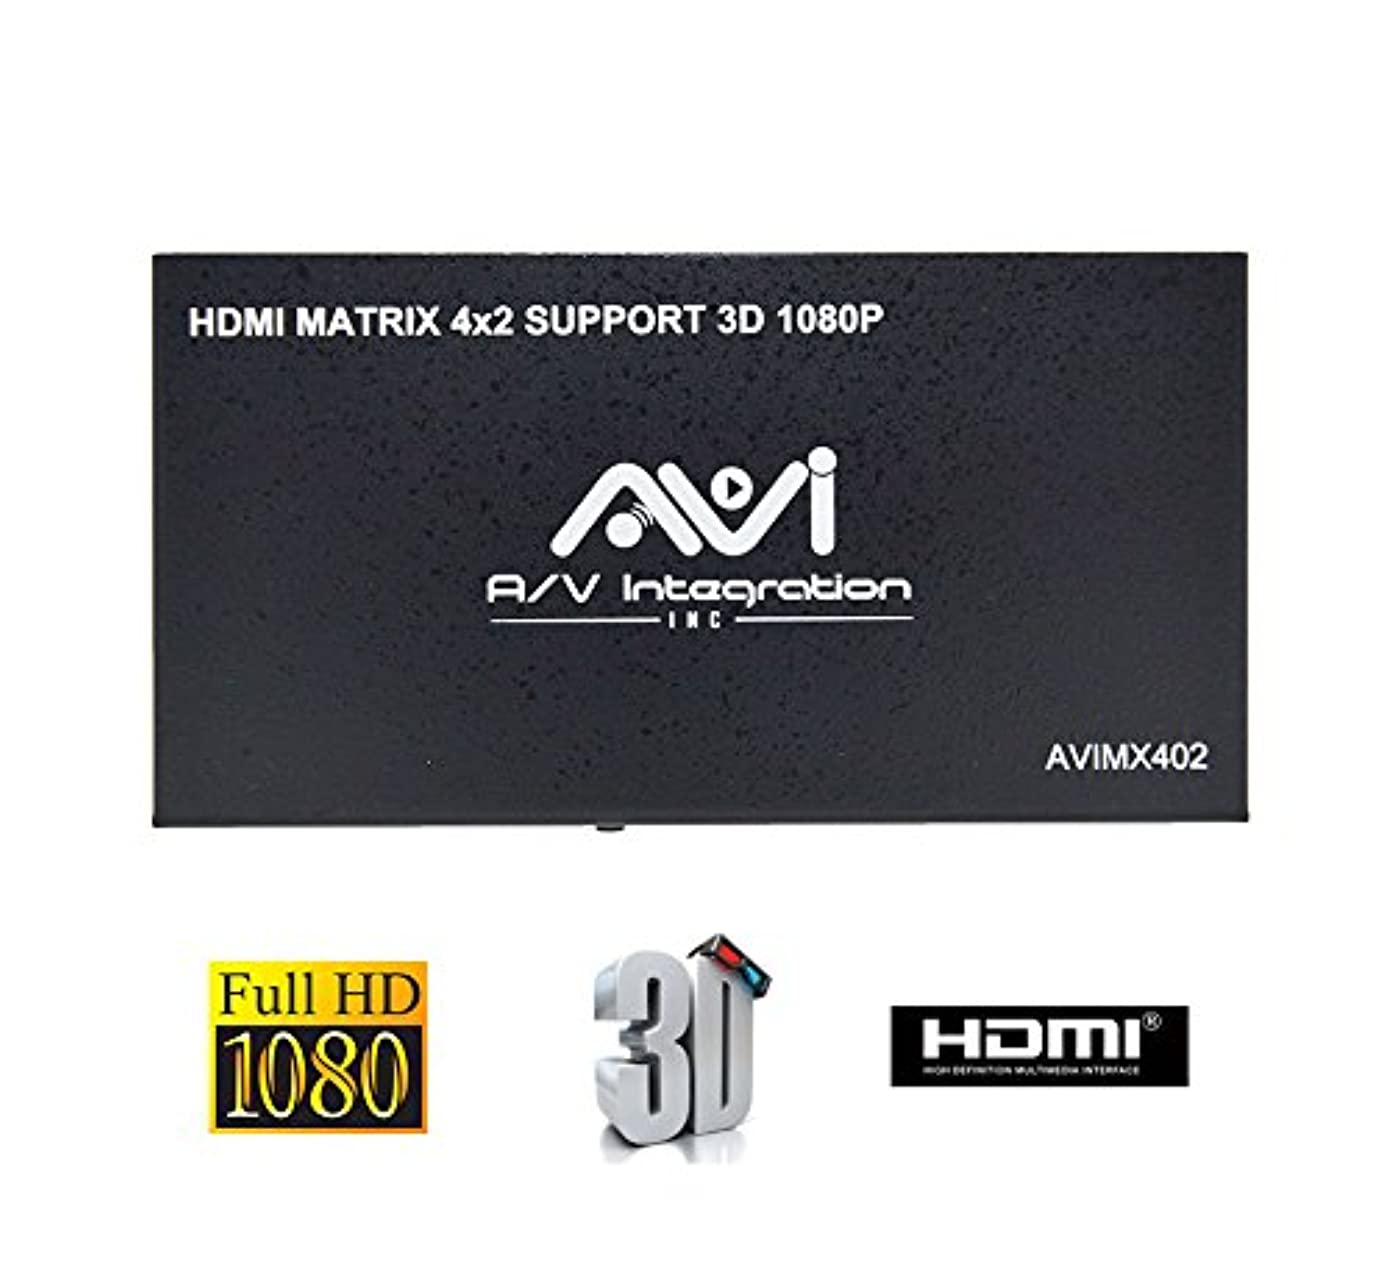 AVISHOP 4x2 HDMI Matrix Switch with Remote Control Support 3D 1080P Any 4 HDMI inputs to Any 2 HDMI Standard outputs